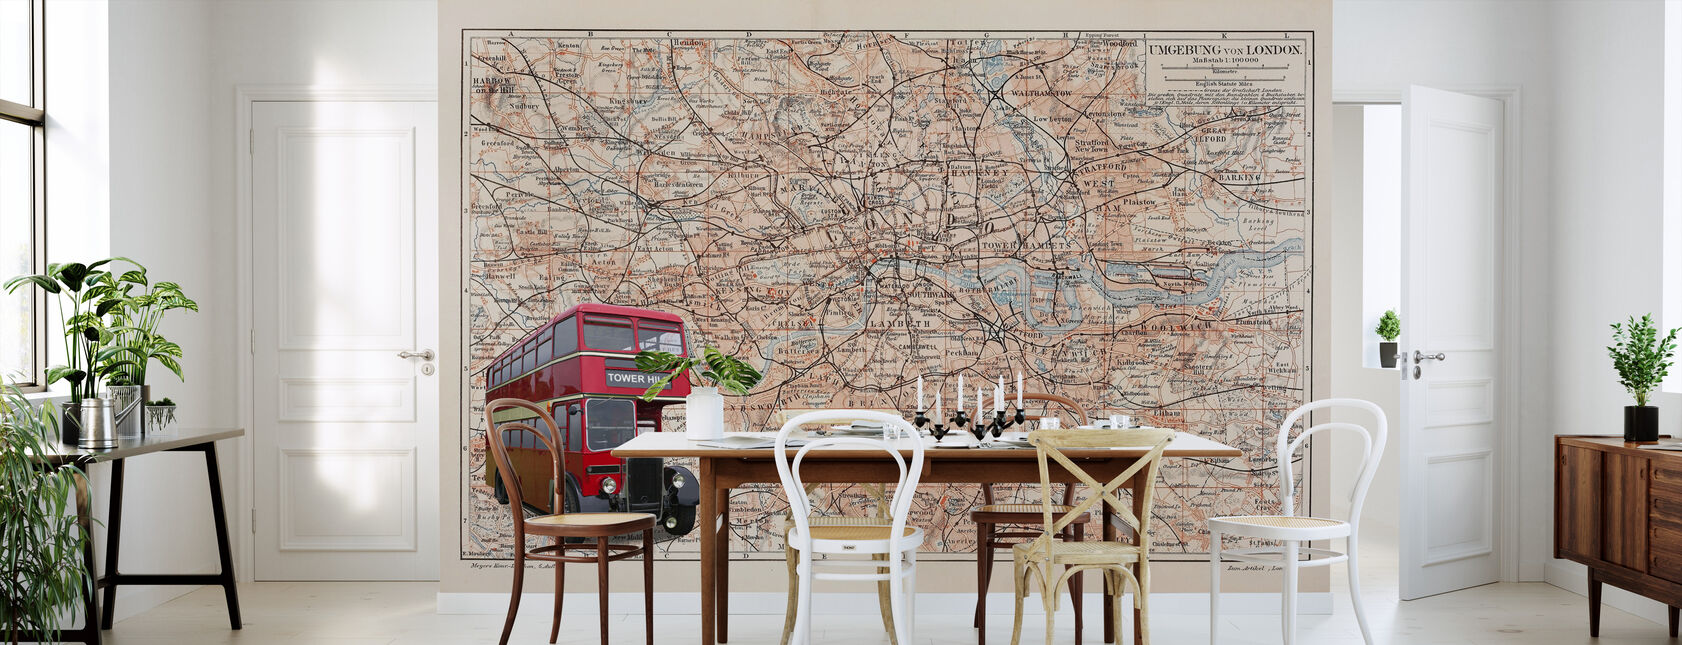 London Map with Bus - Wallpaper - Kitchen